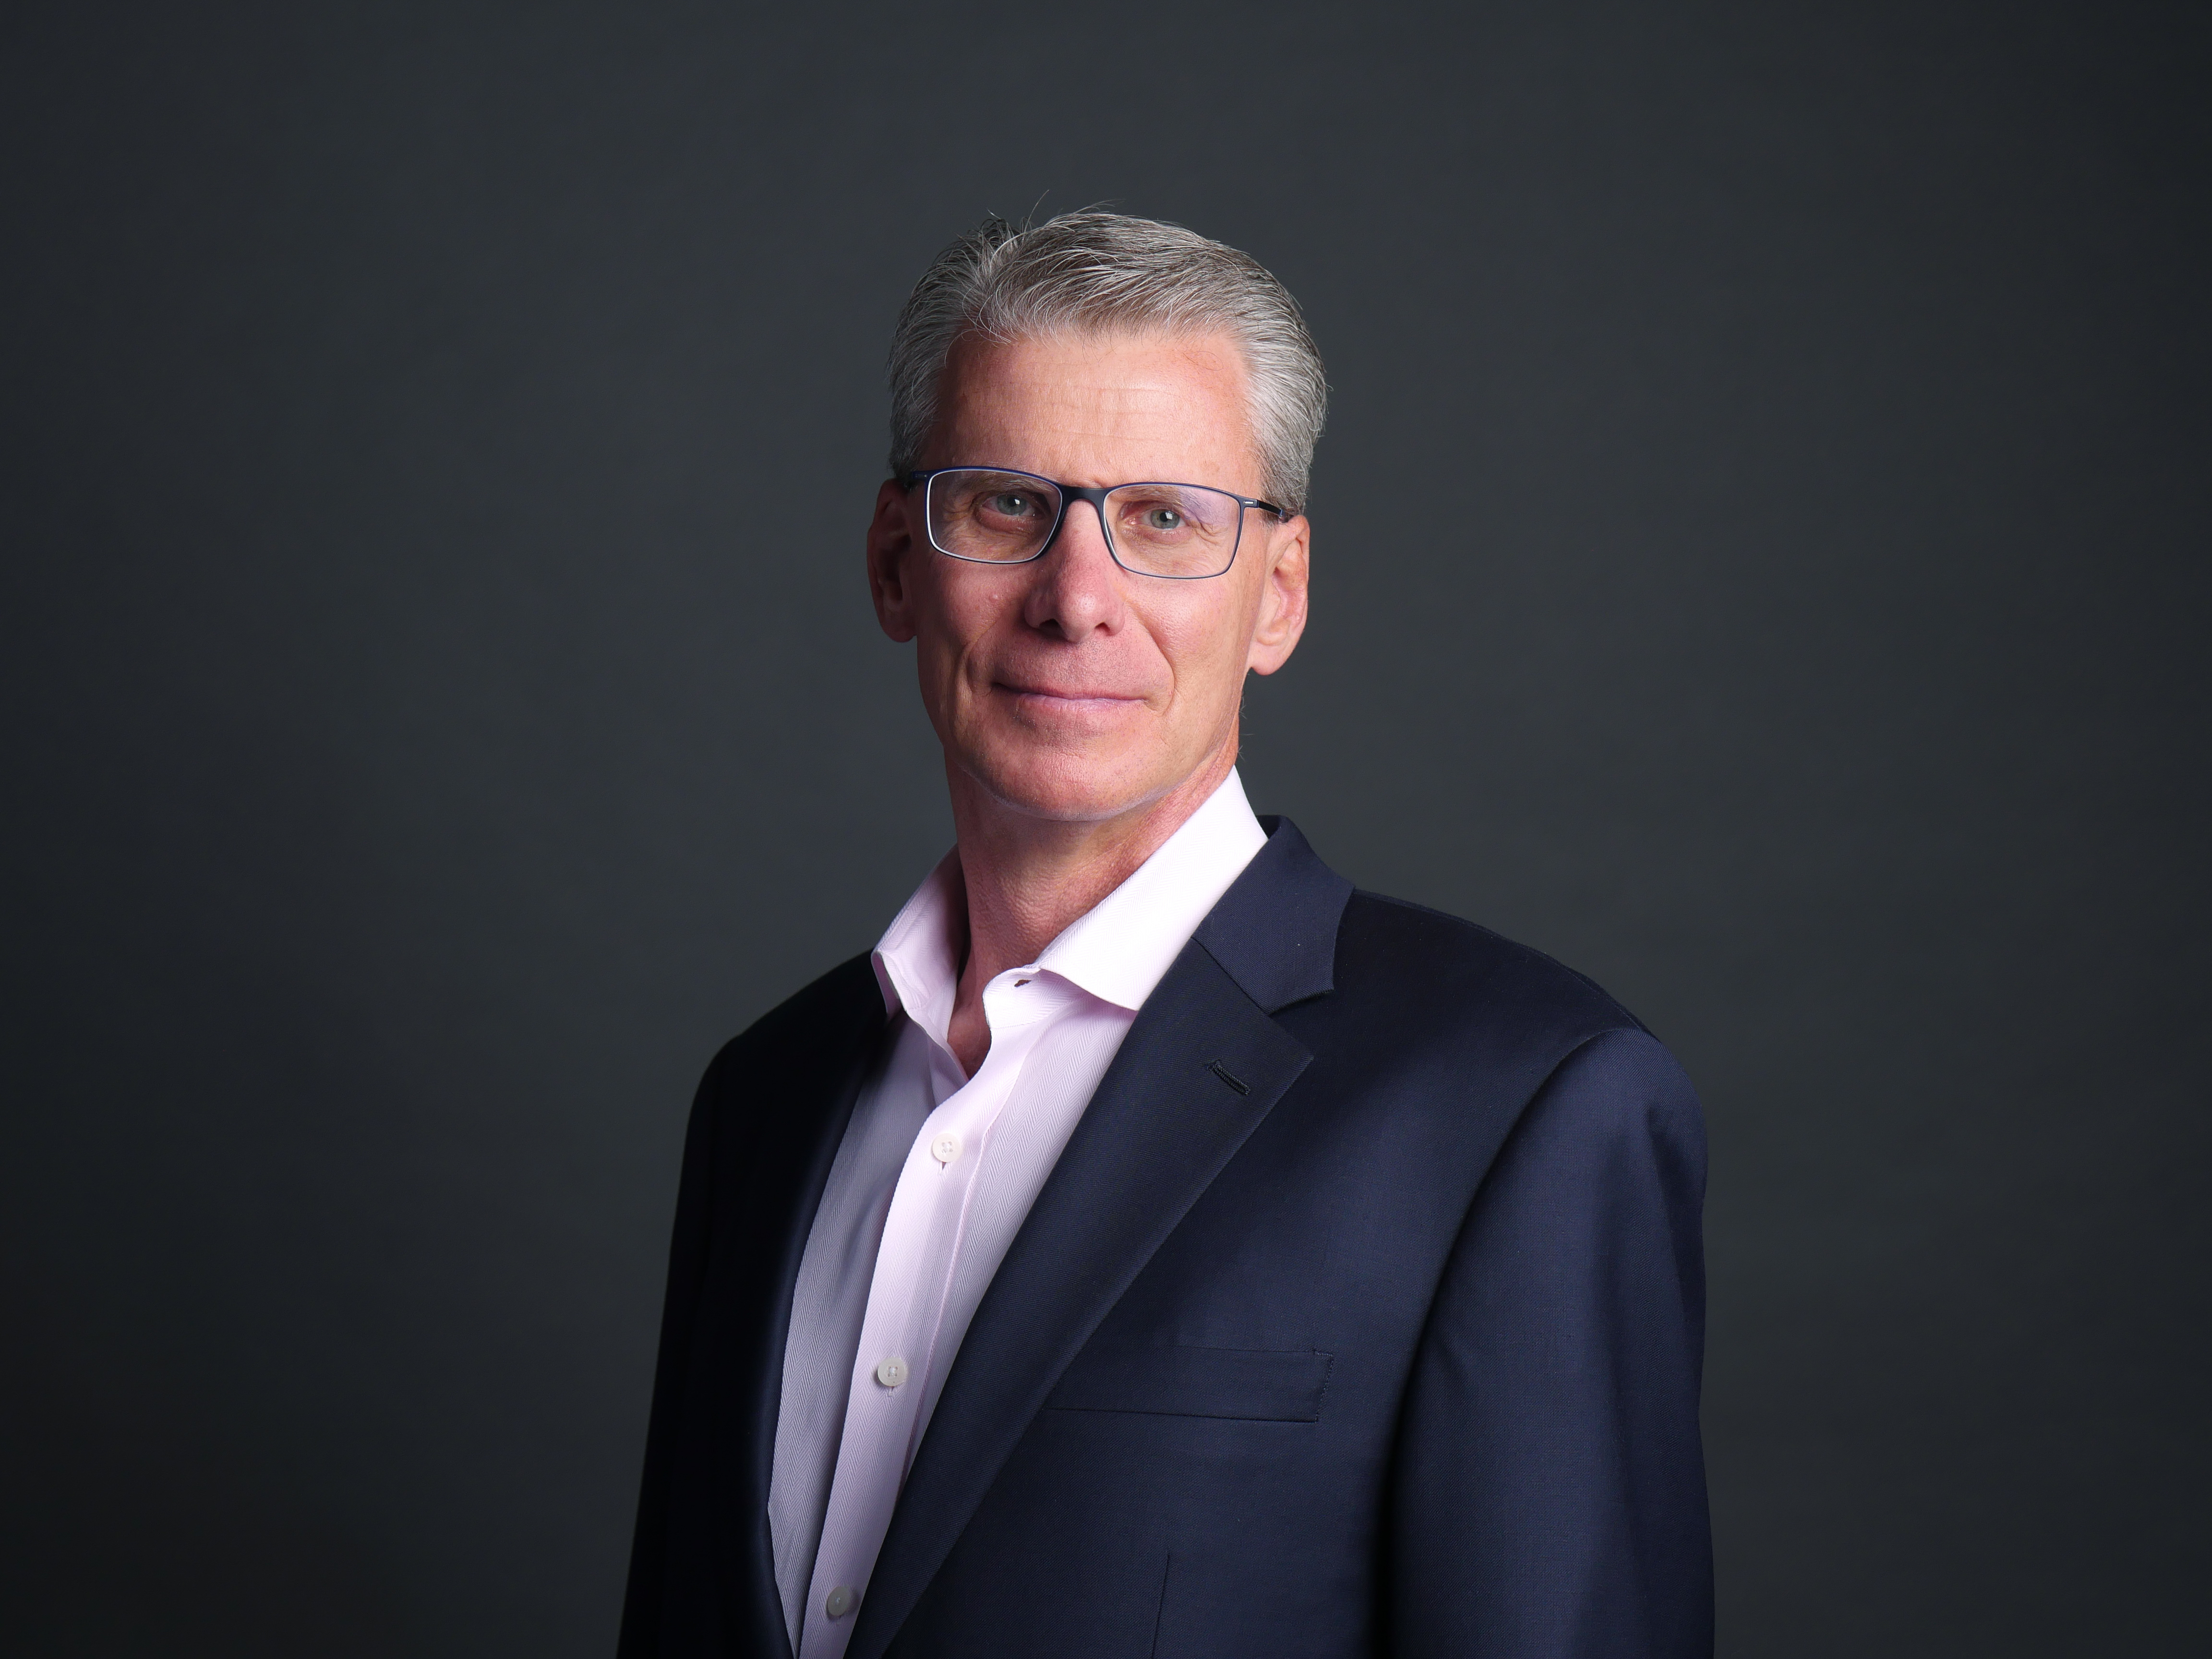 Udemy Appoints David Oppenheimer as Chief Financial Officer